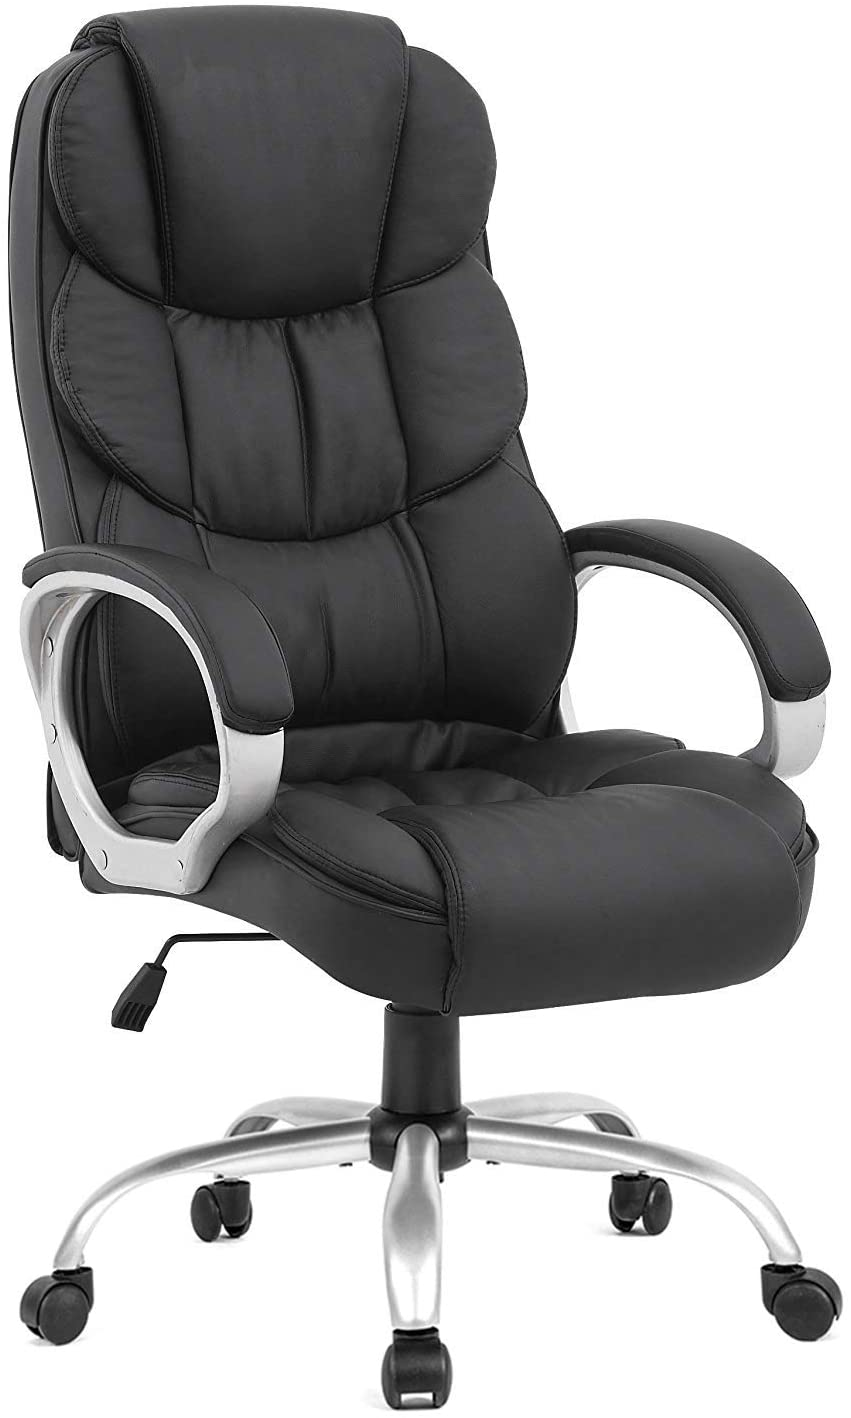 Ergonomic Computer Chair with Lumbar Support Arms